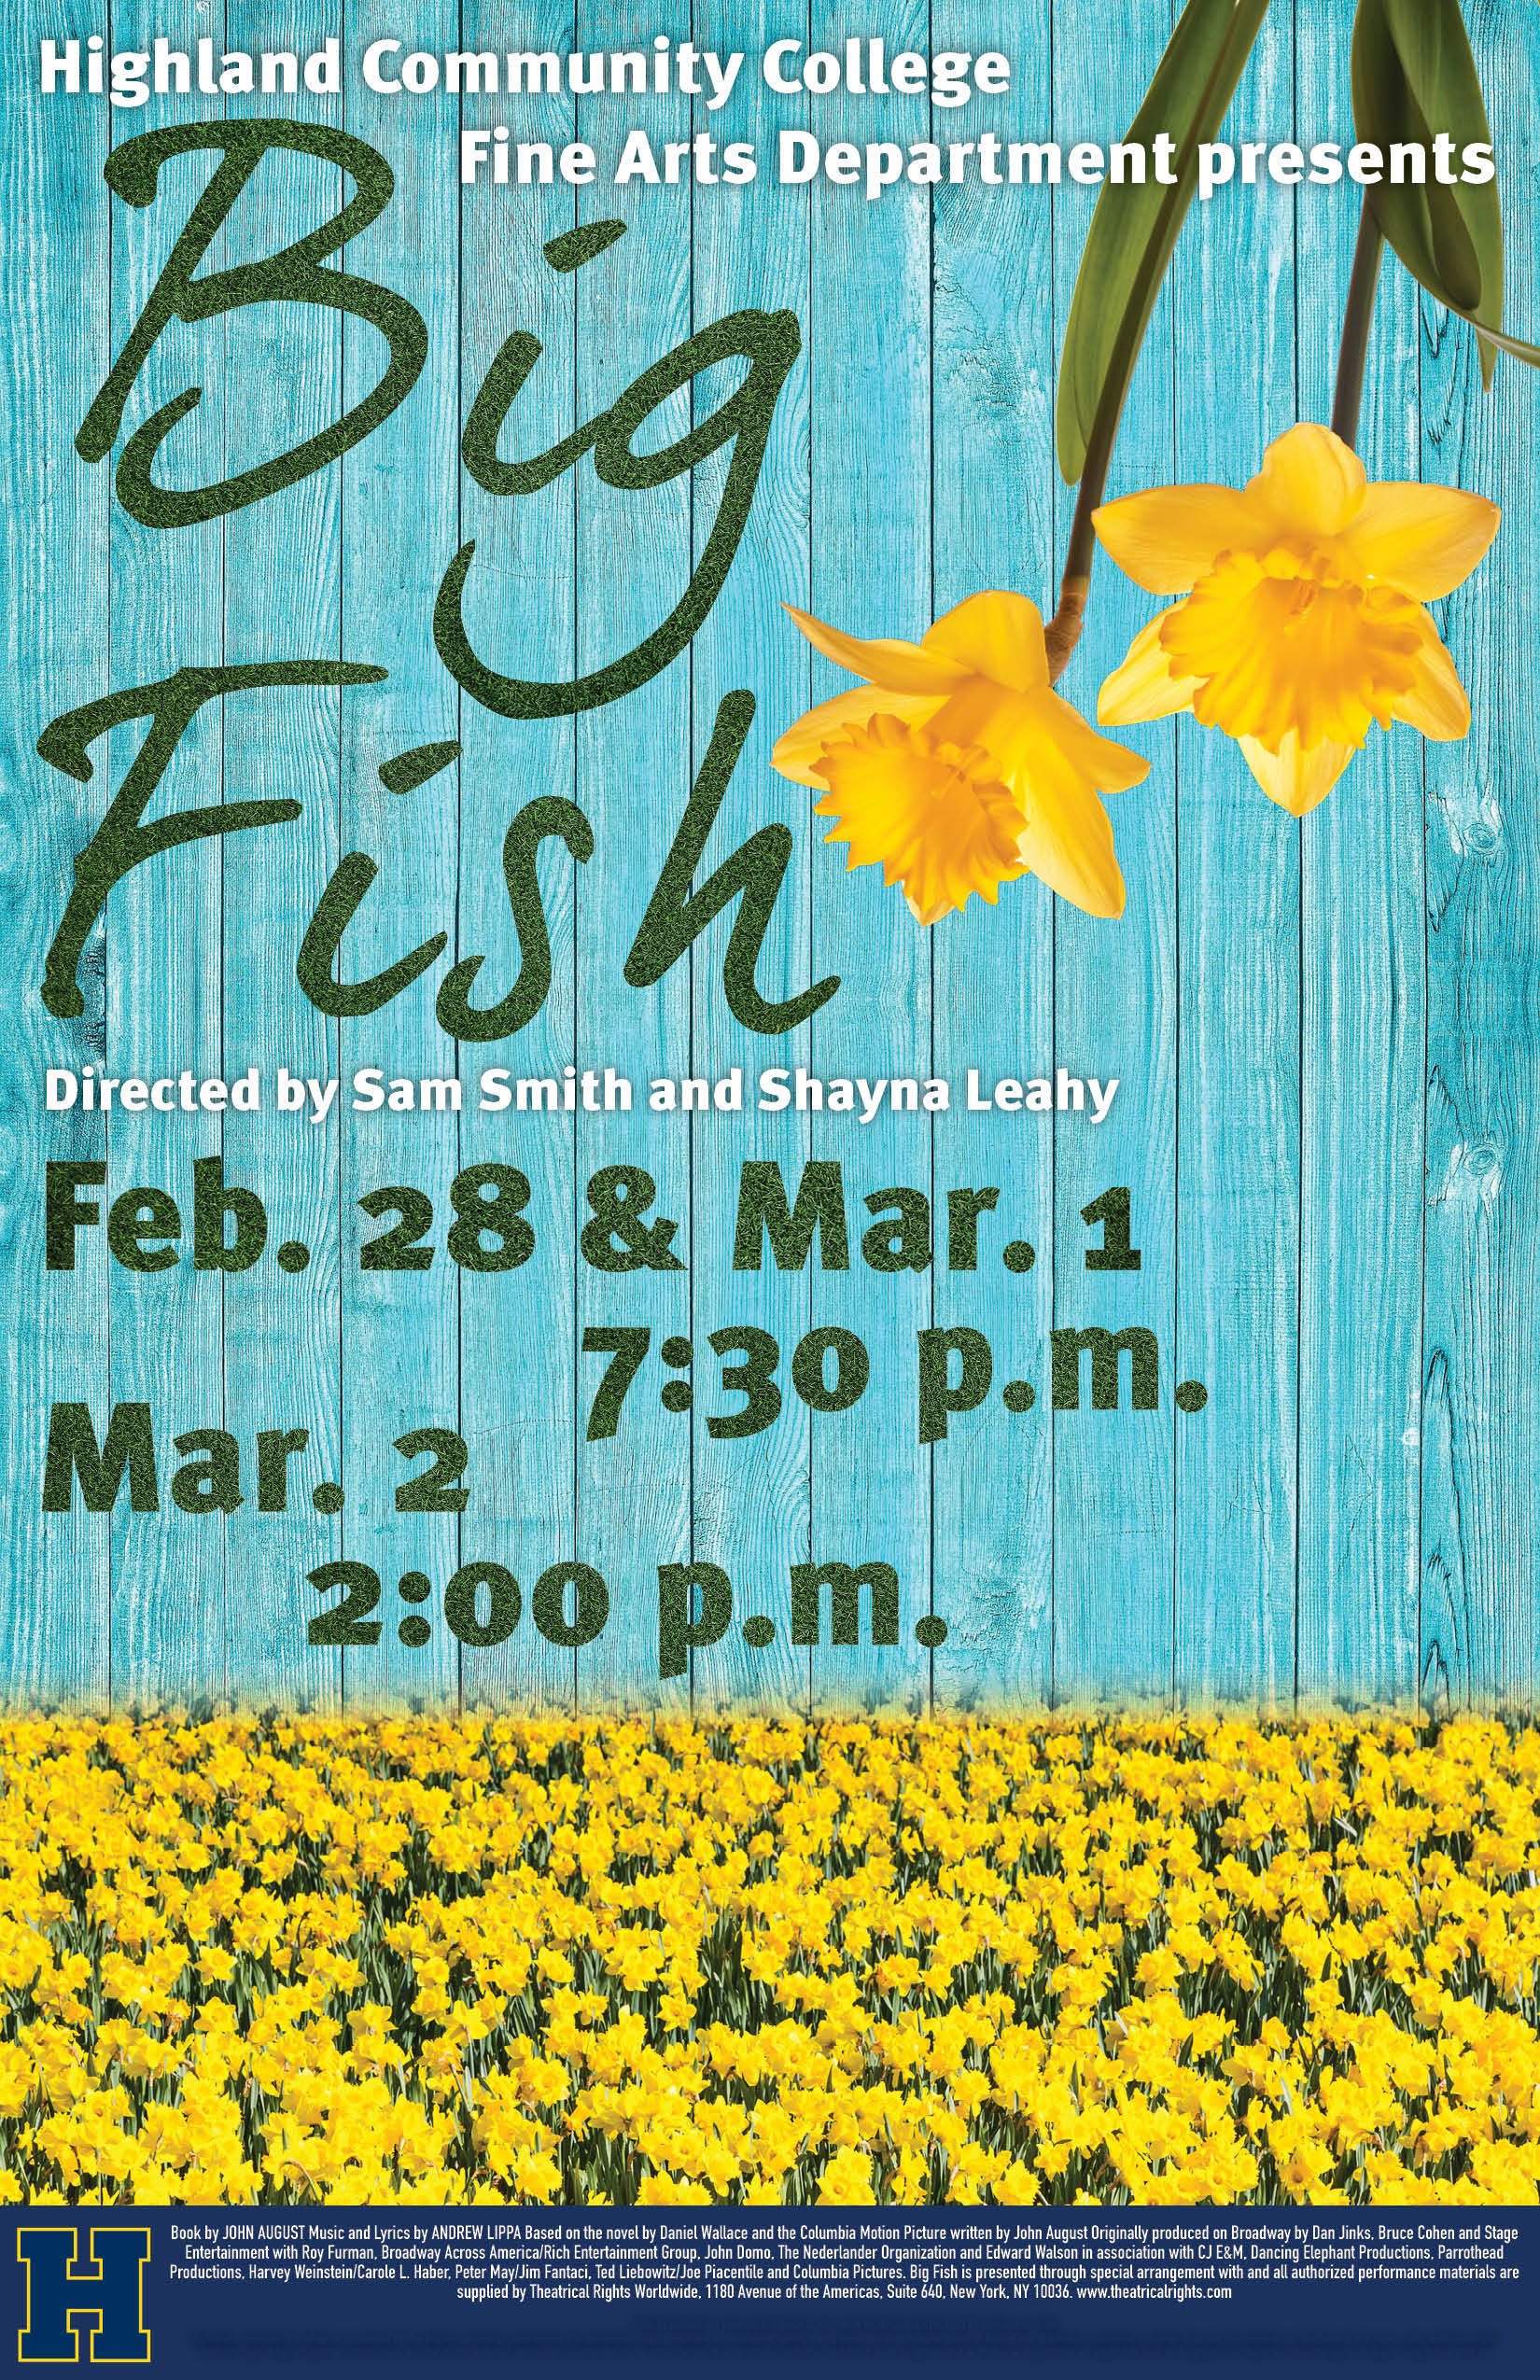 Highland Community College Fine Arts Department Presents Big Fish Opening February 28